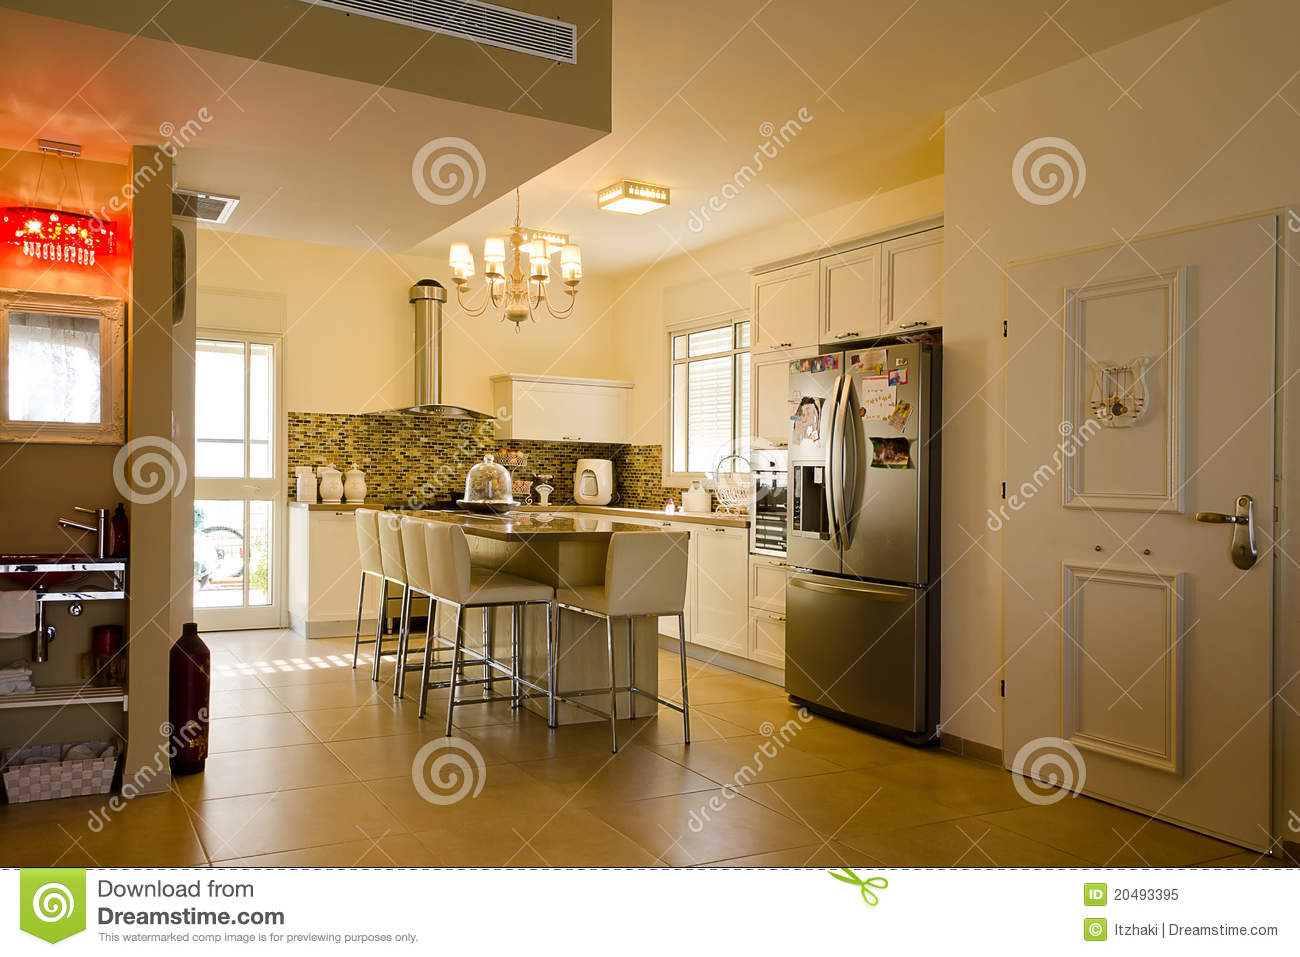 Warm Colors Kitchen Stock Image Image Of Cabinets